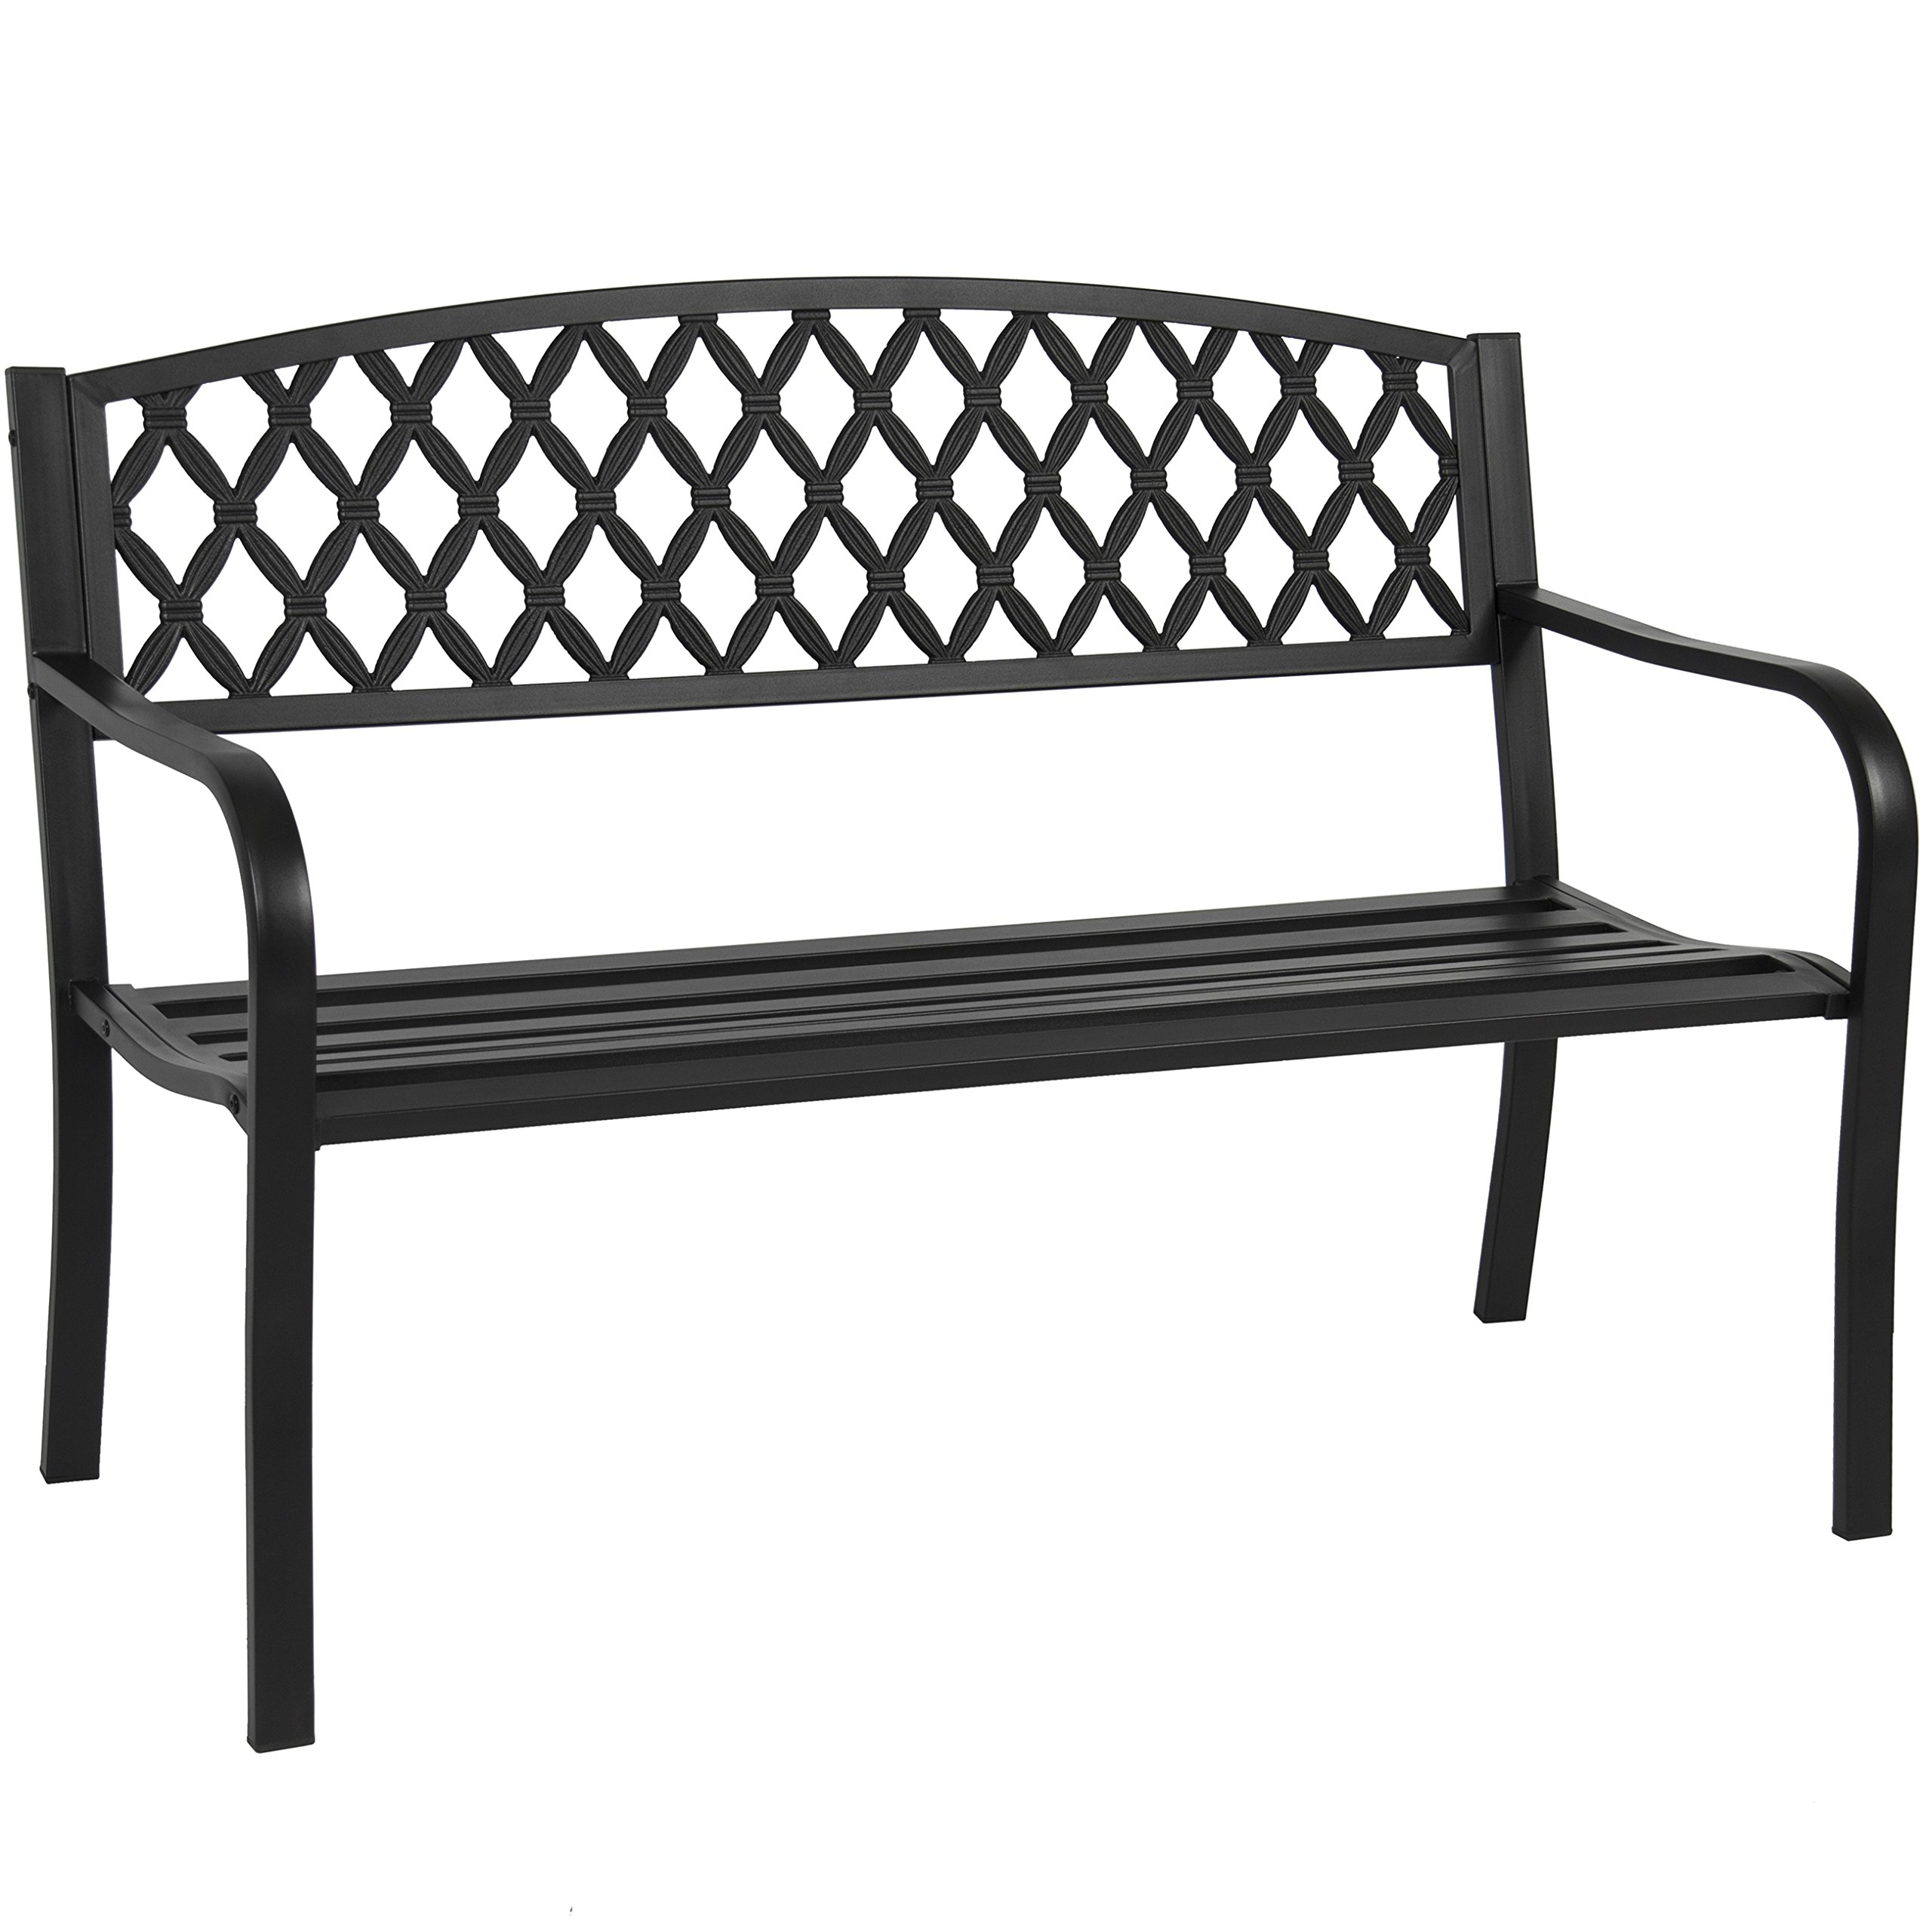 Best Choice Products 50in Steel Outdoor Patio Garden Park Bench Porch Chair Yard Furniture w/Cross Design - Black by Best Choice Products